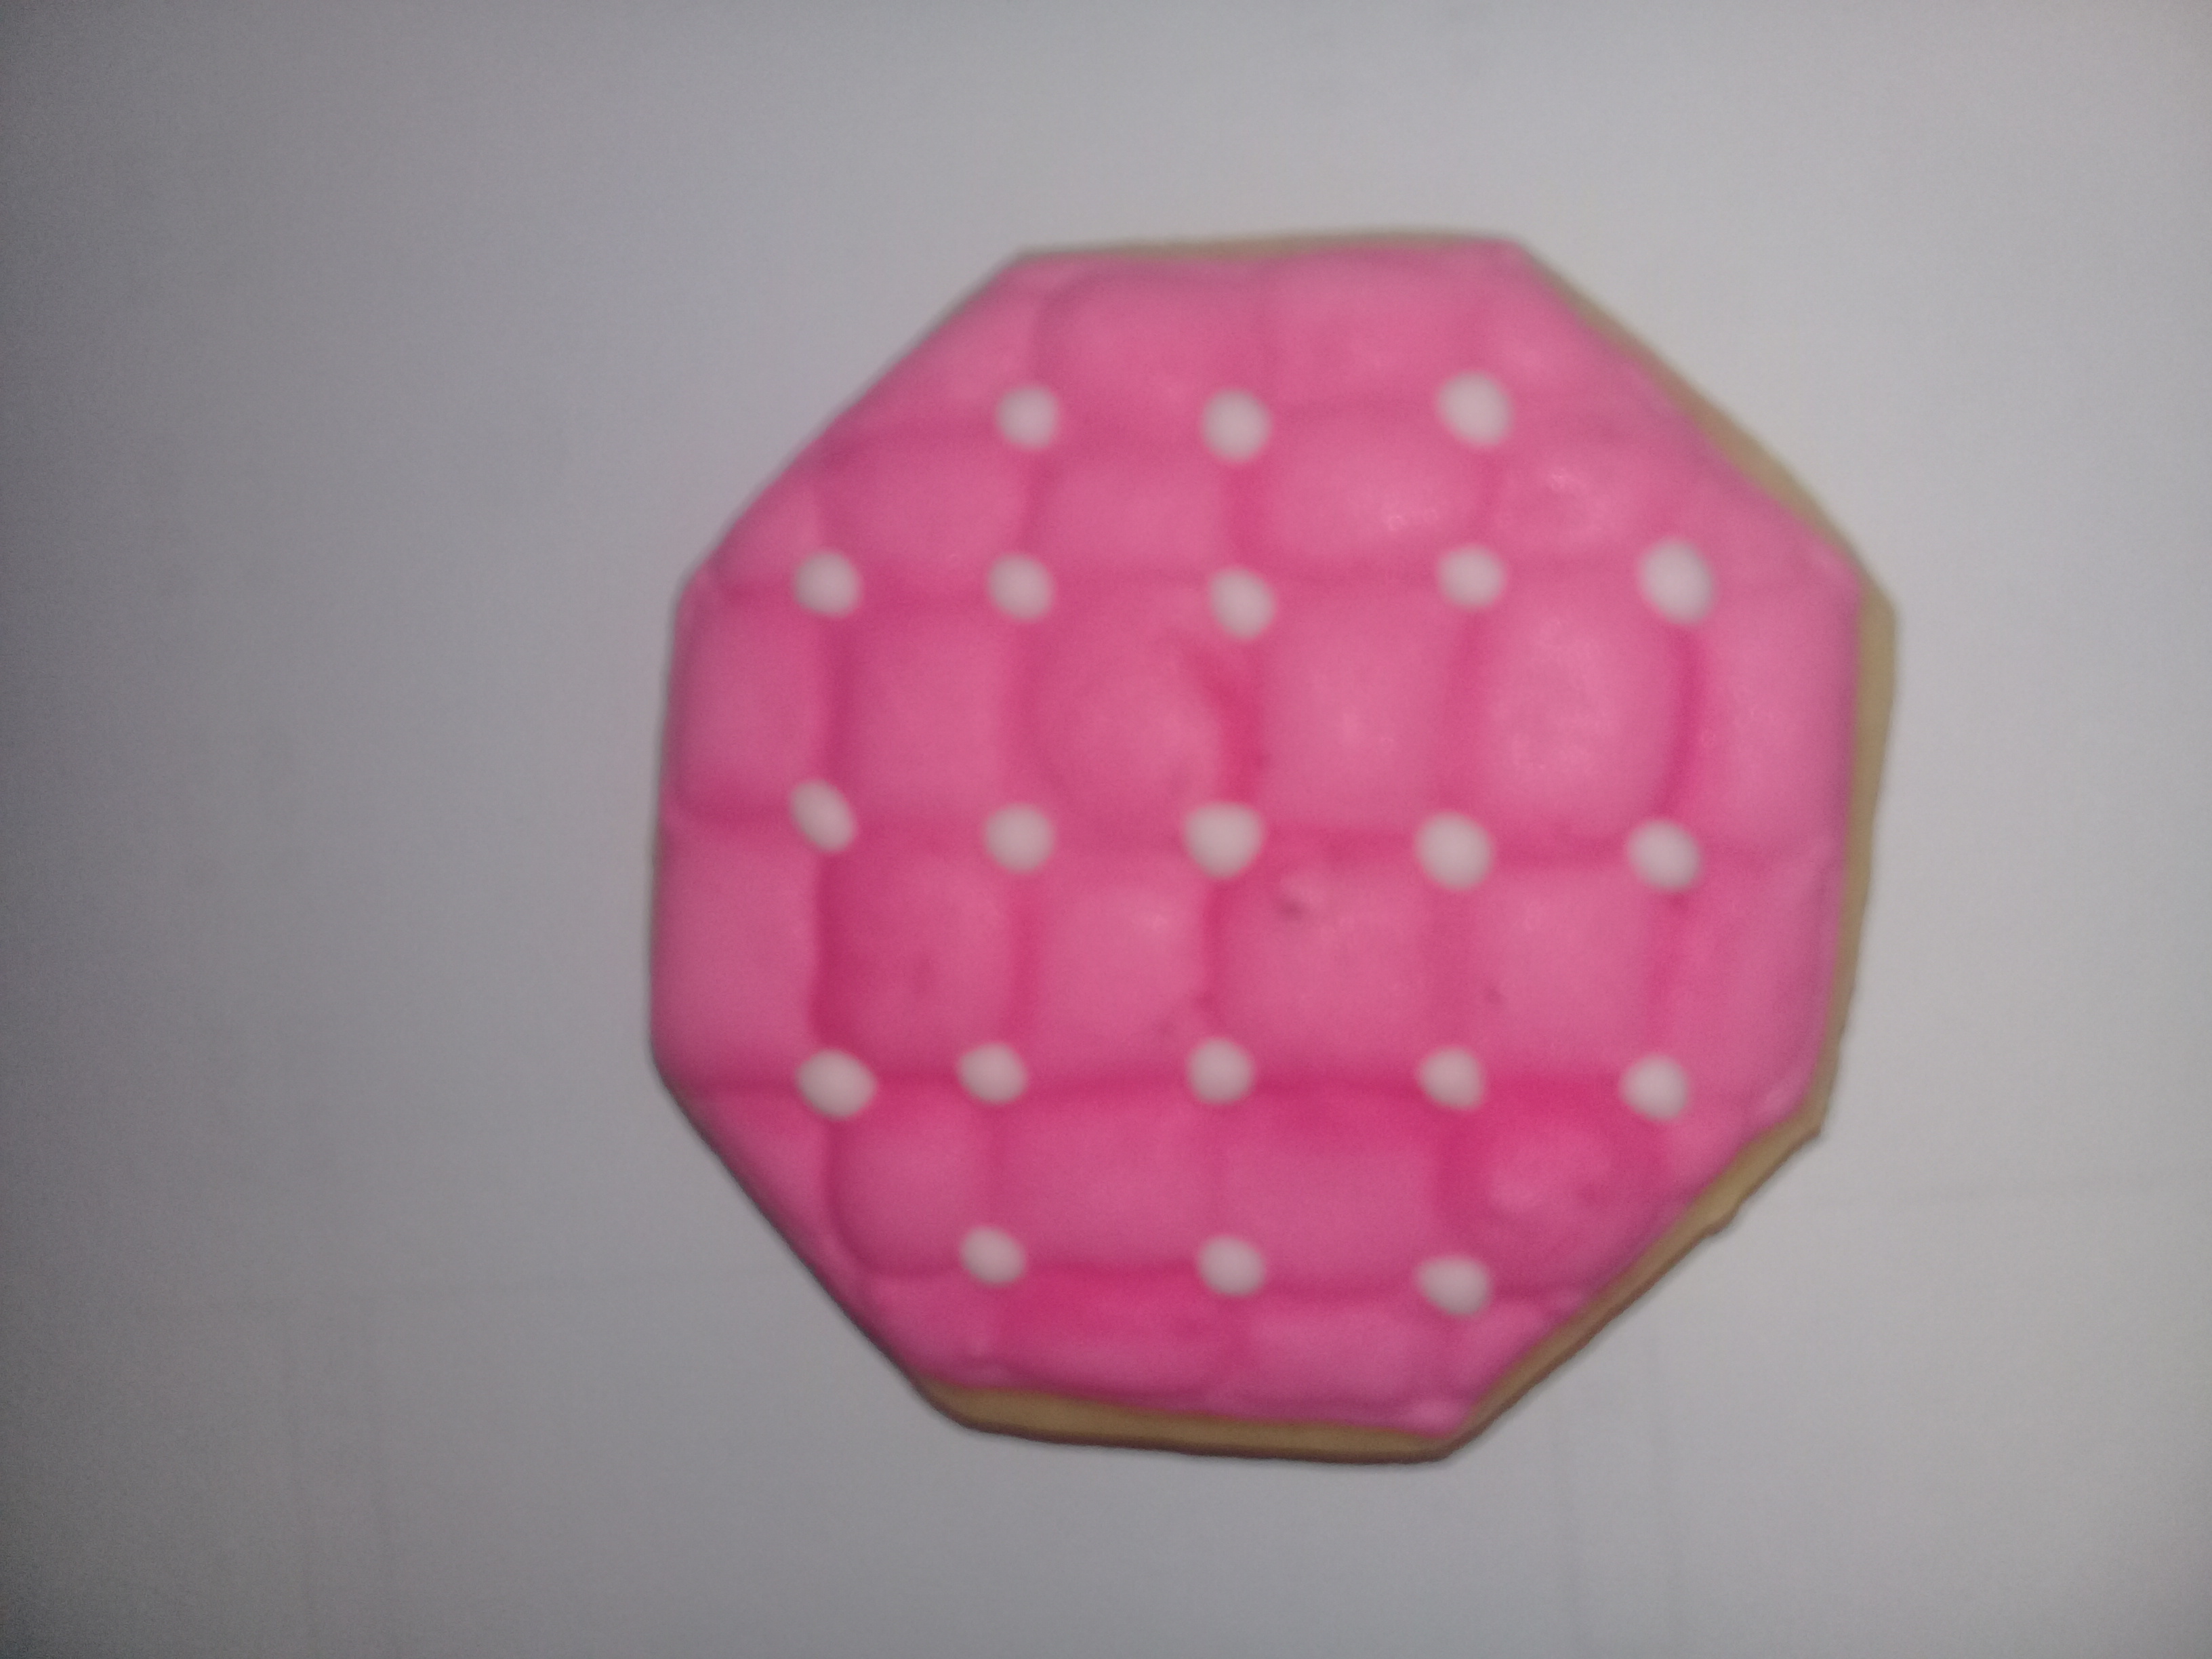 Pink and White Quilt Cookie 1 - Cookies by Me